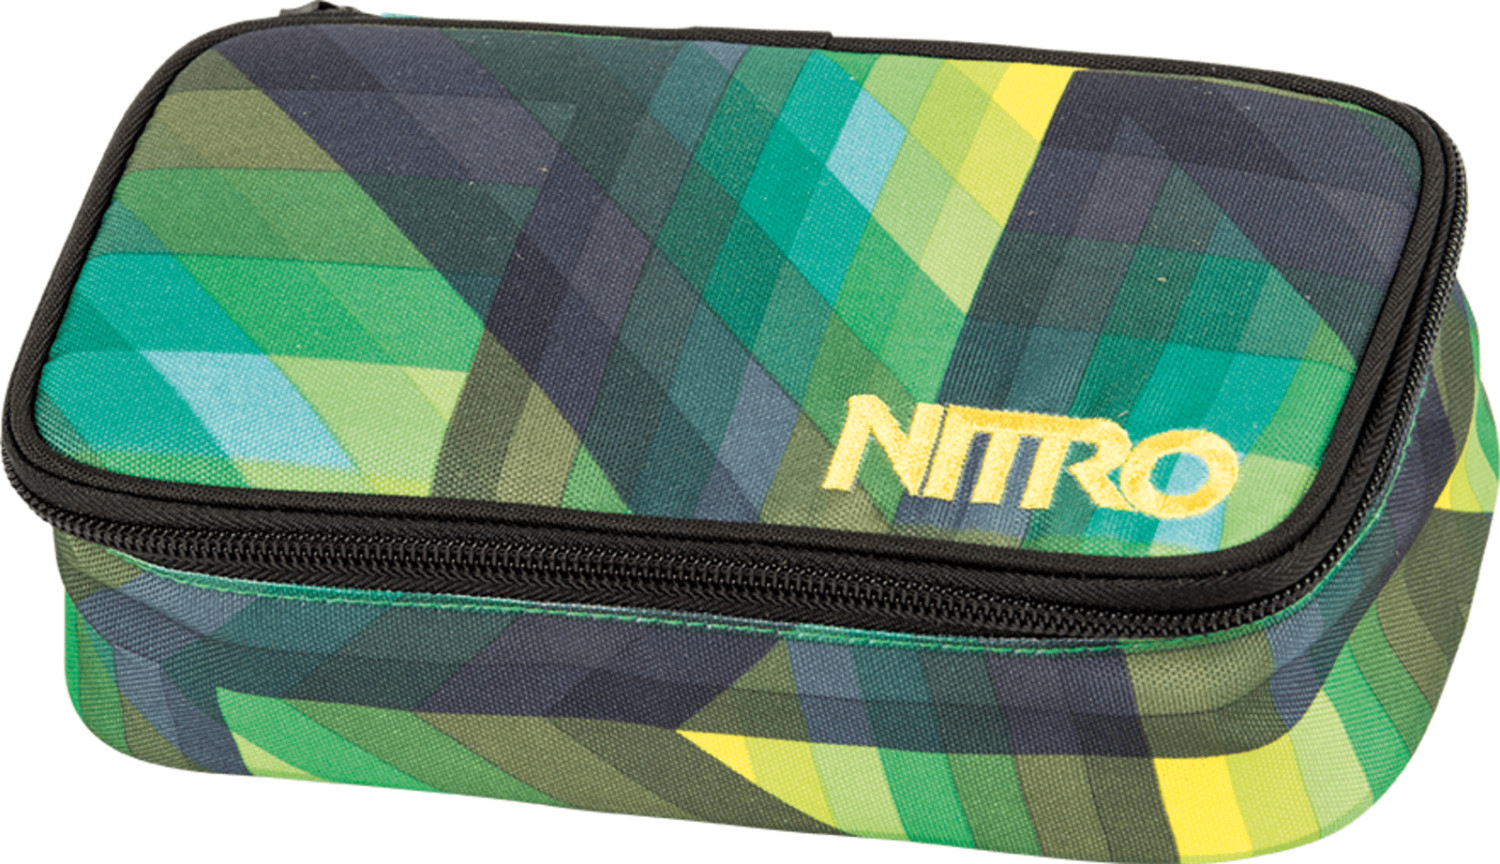 Nitro Pencil Case XL geo green